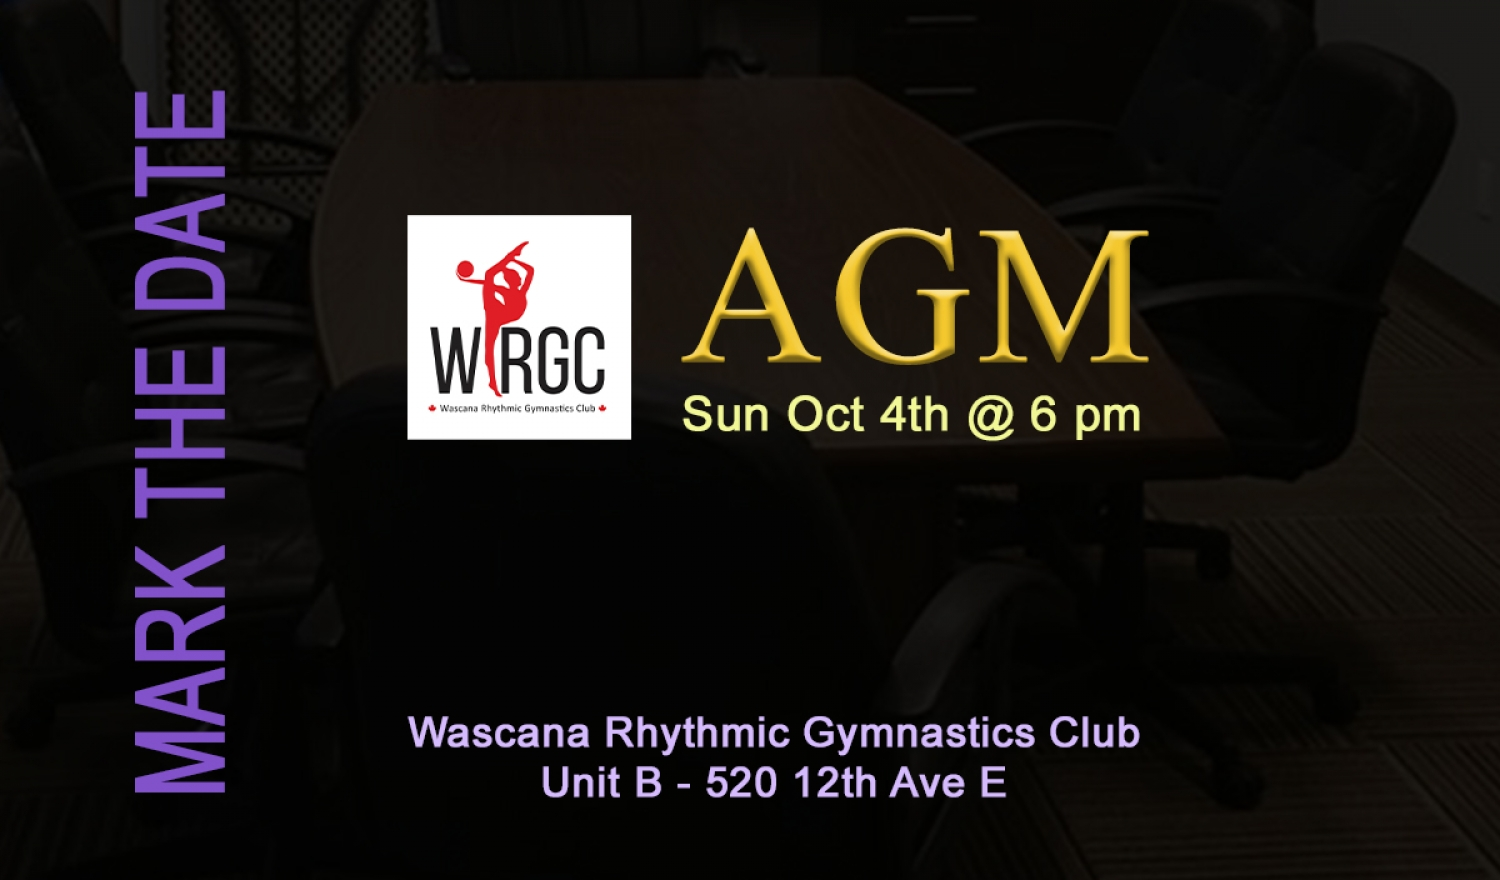 WRGC 2020 AGM - Oct 4th